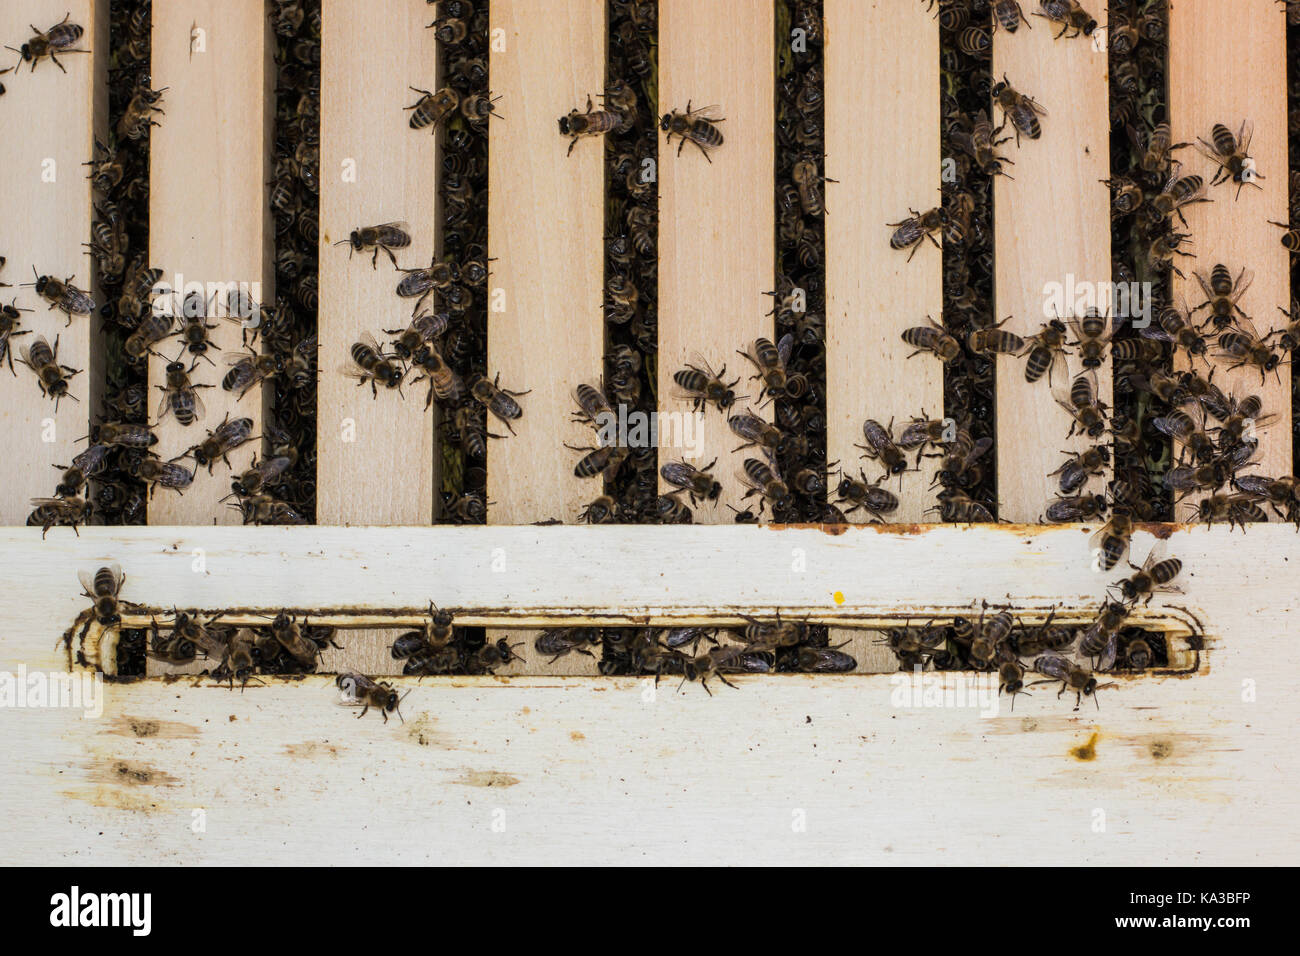 Bees On The Frames Stock Photos Images Wiring Board Bee In Hive With Them Collecting Nectar Image